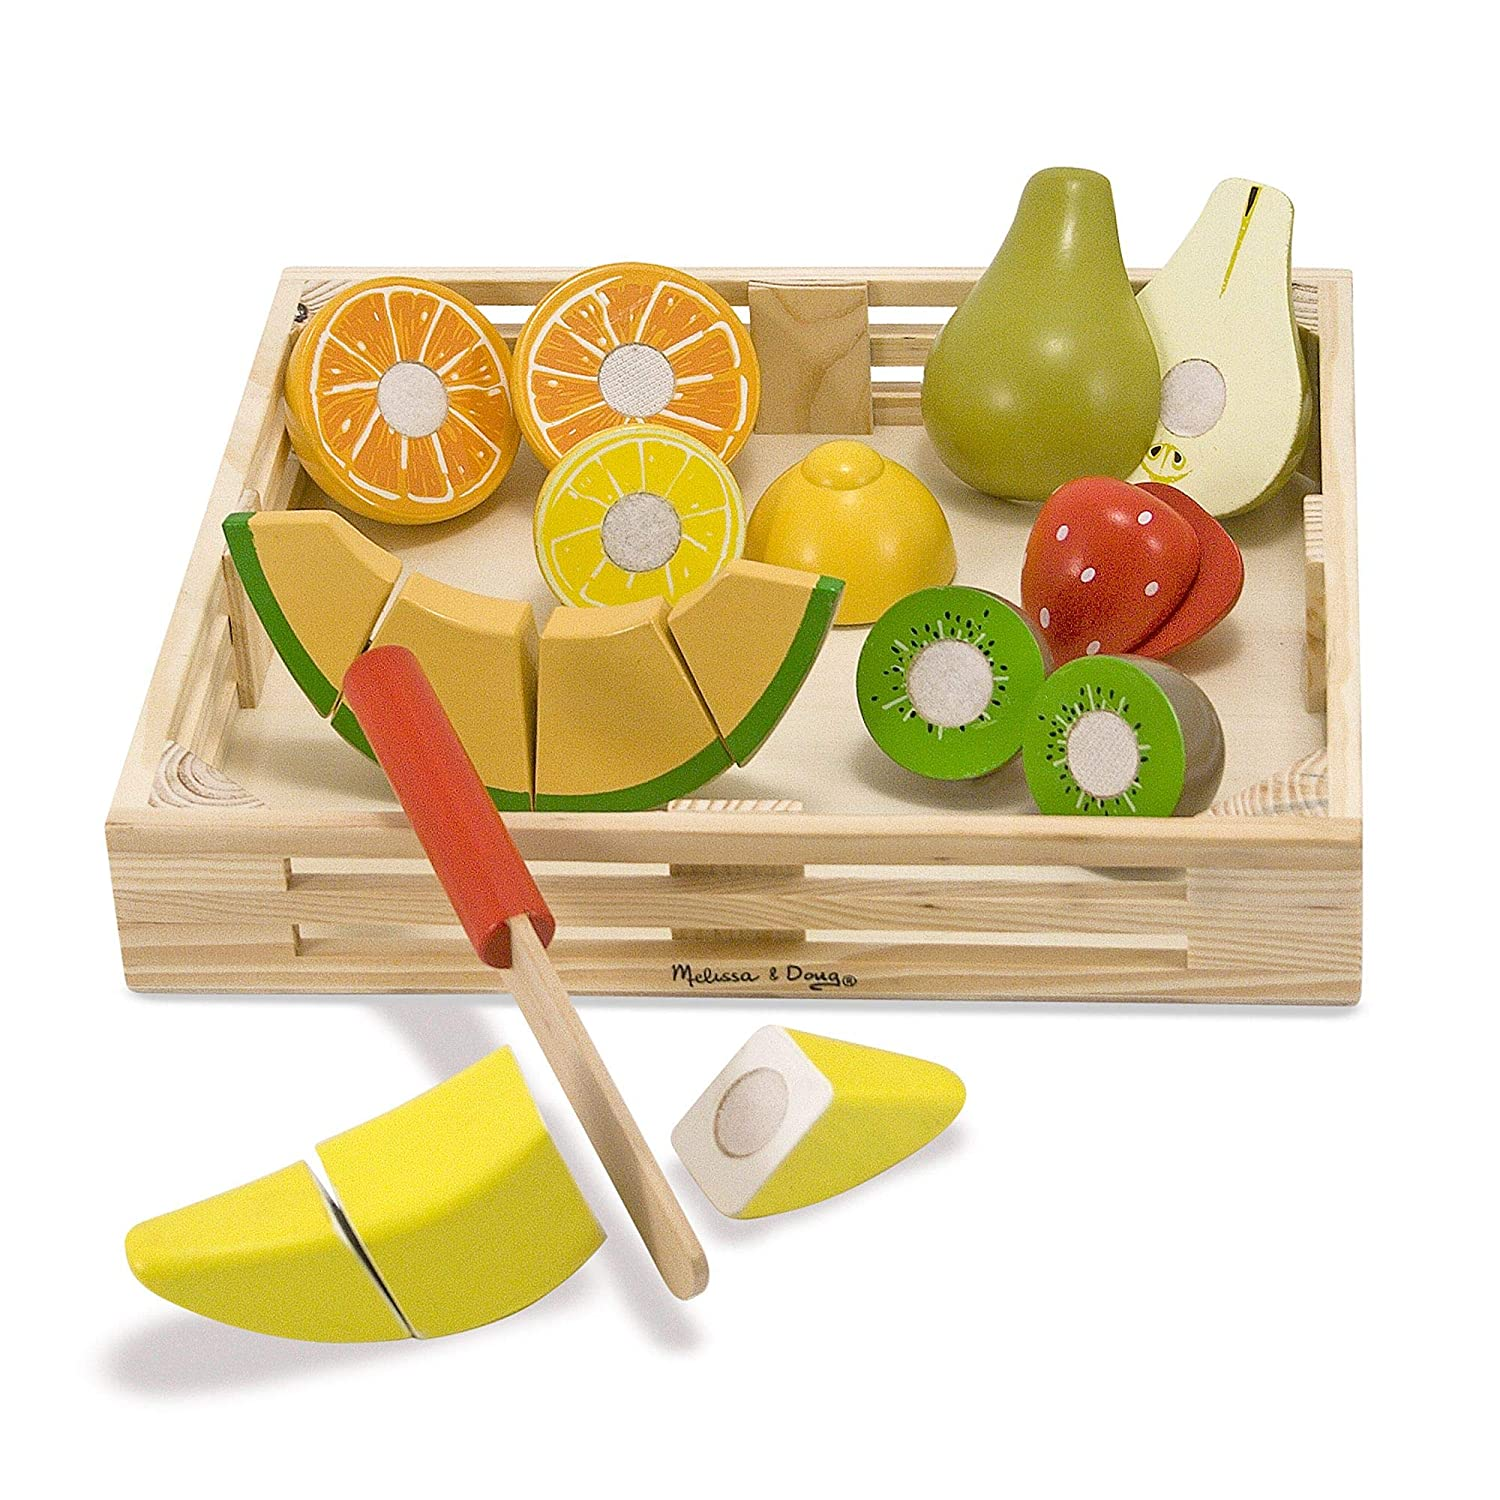 Melissa & Doug Cutting Fruit Set, Wooden Play Food, Attractive Wooden Crate, Introduces Part and Whole Concepts, 17-Piece Set, 2.75″ H × 9″ W × 9″ L